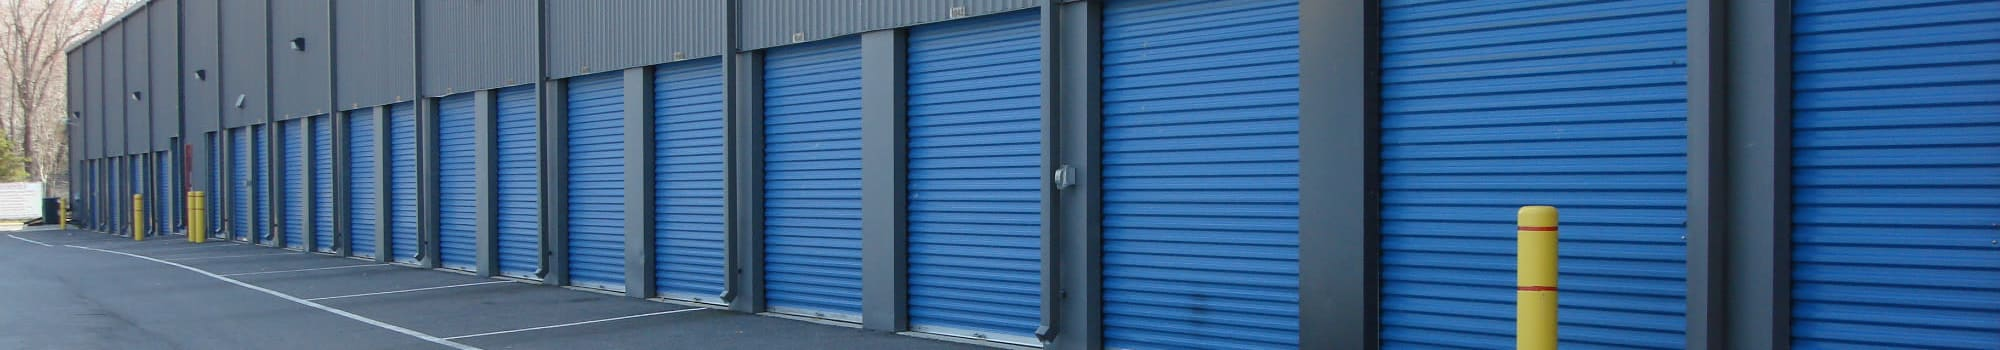 Self Storage Plus offering climate-controlled storage